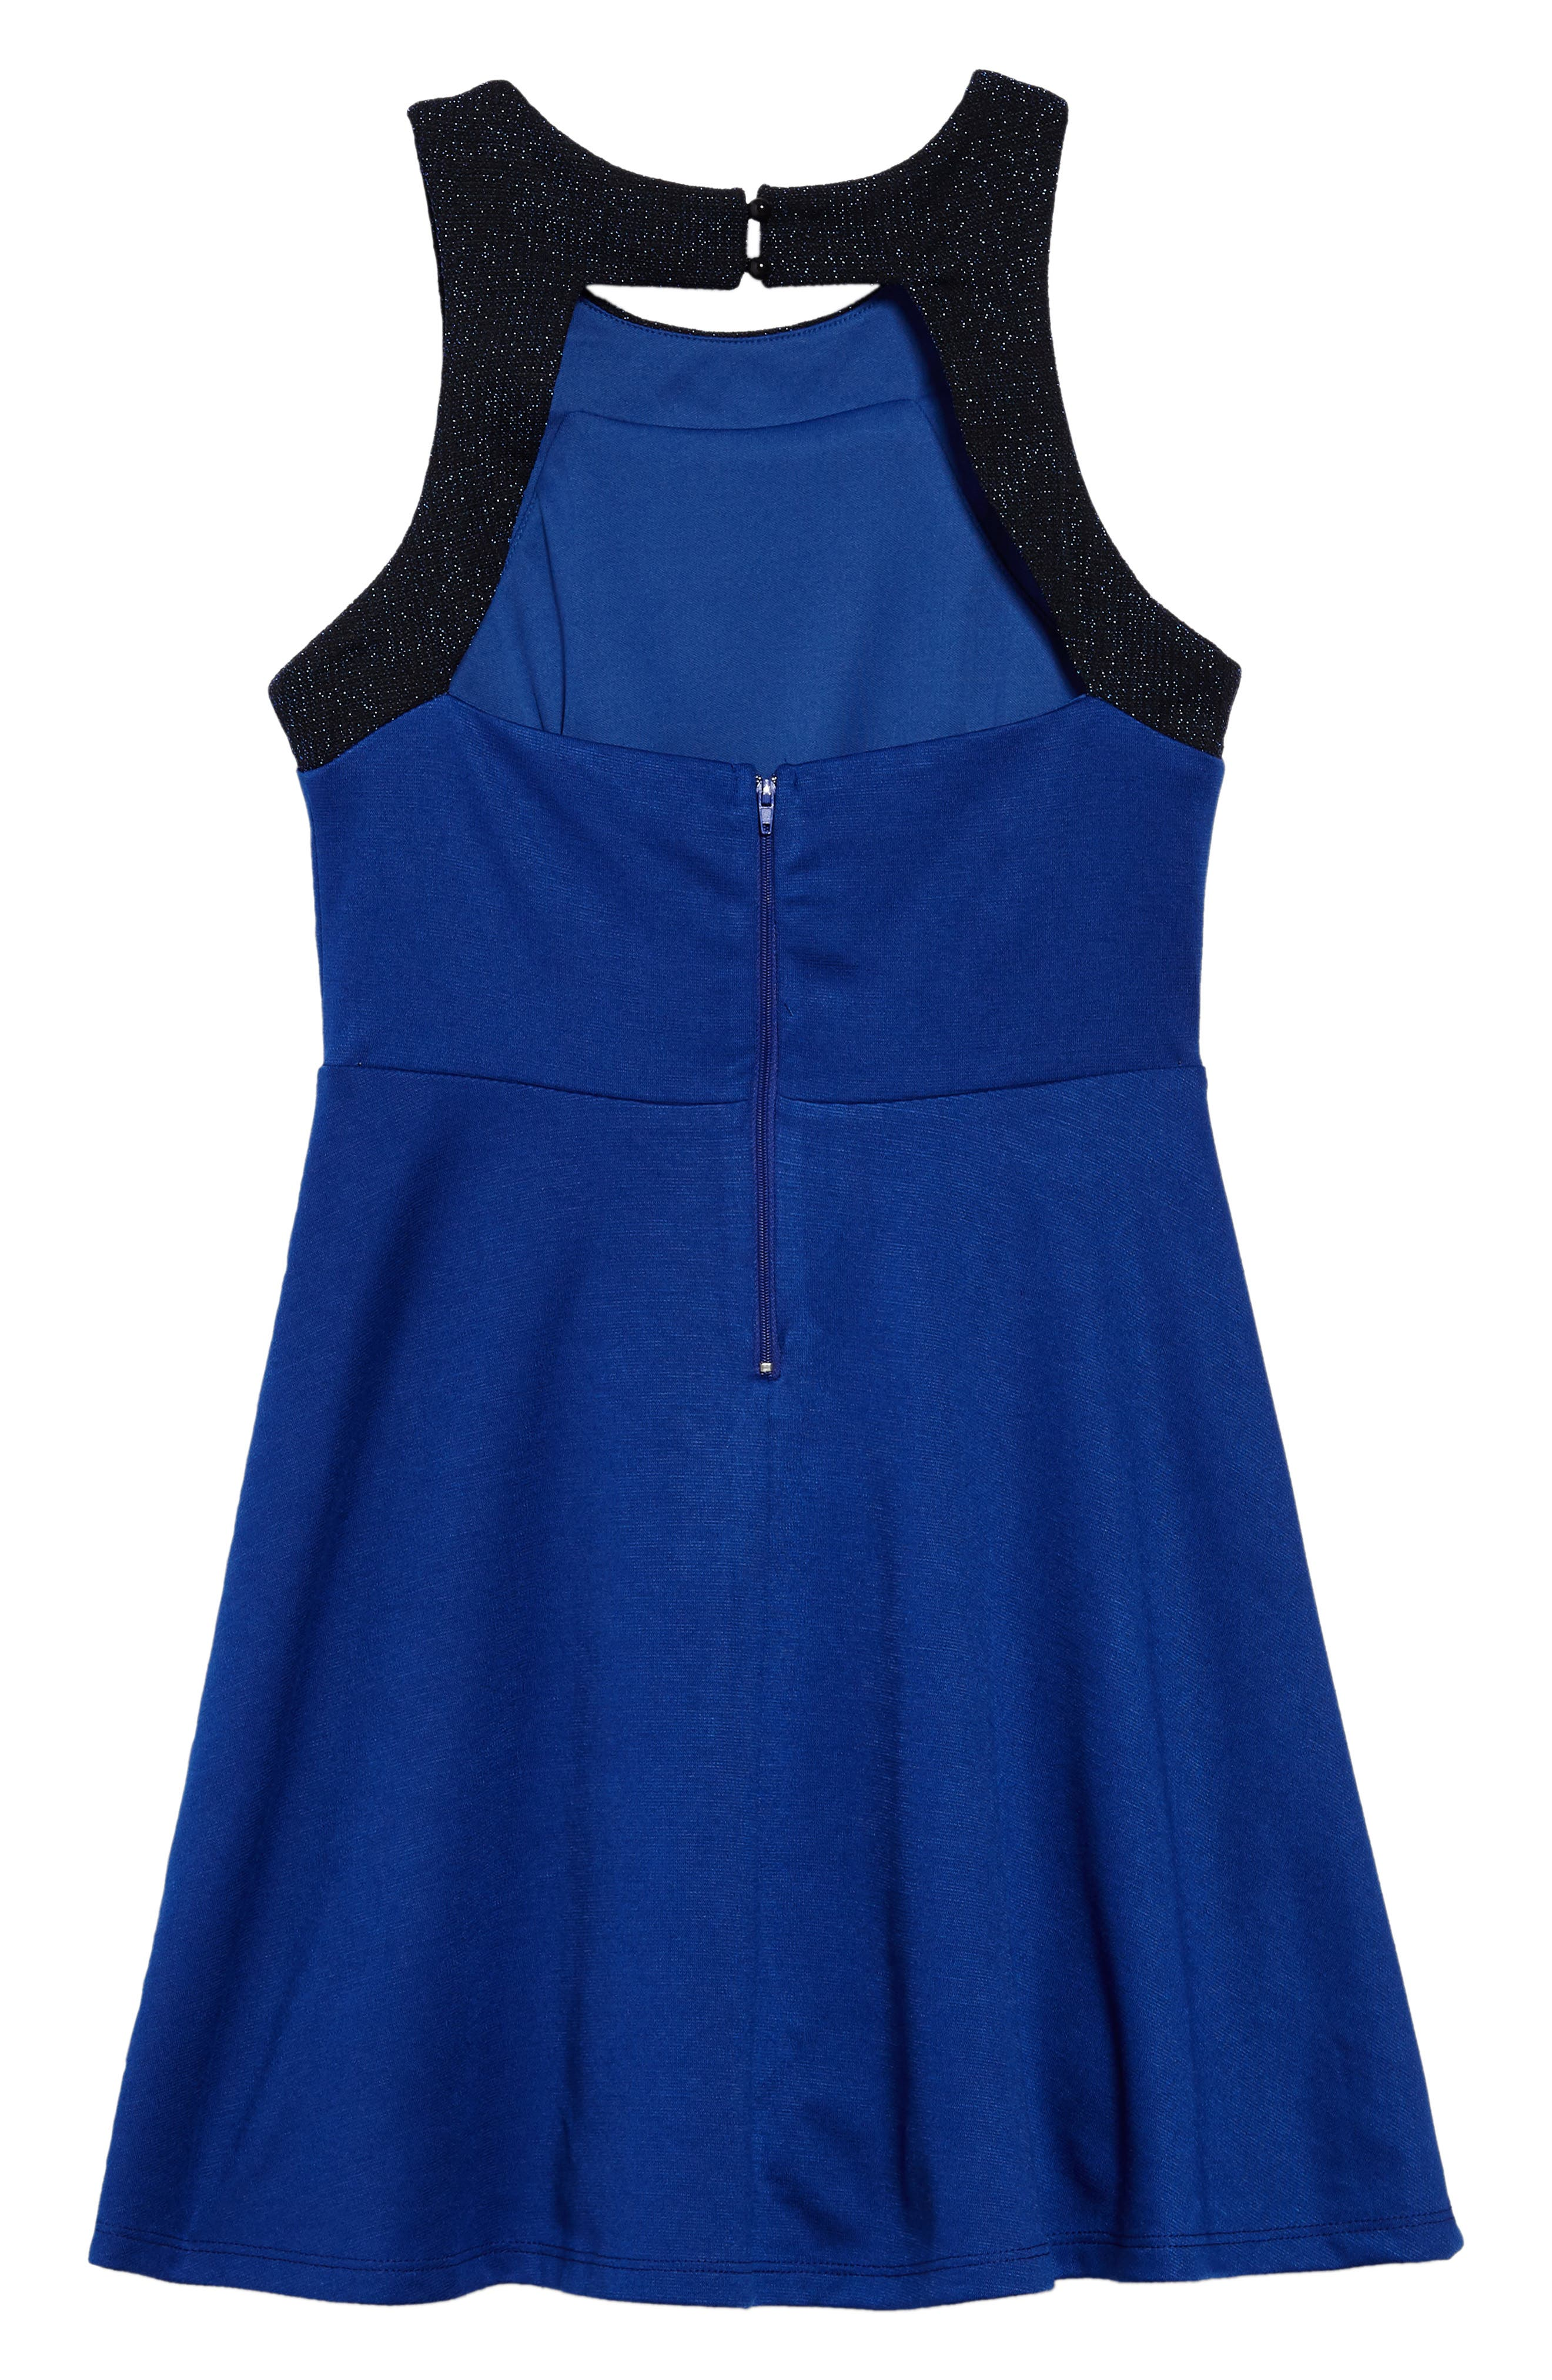 Heather Open Back Dress,                             Alternate thumbnail 2, color,                             Royal